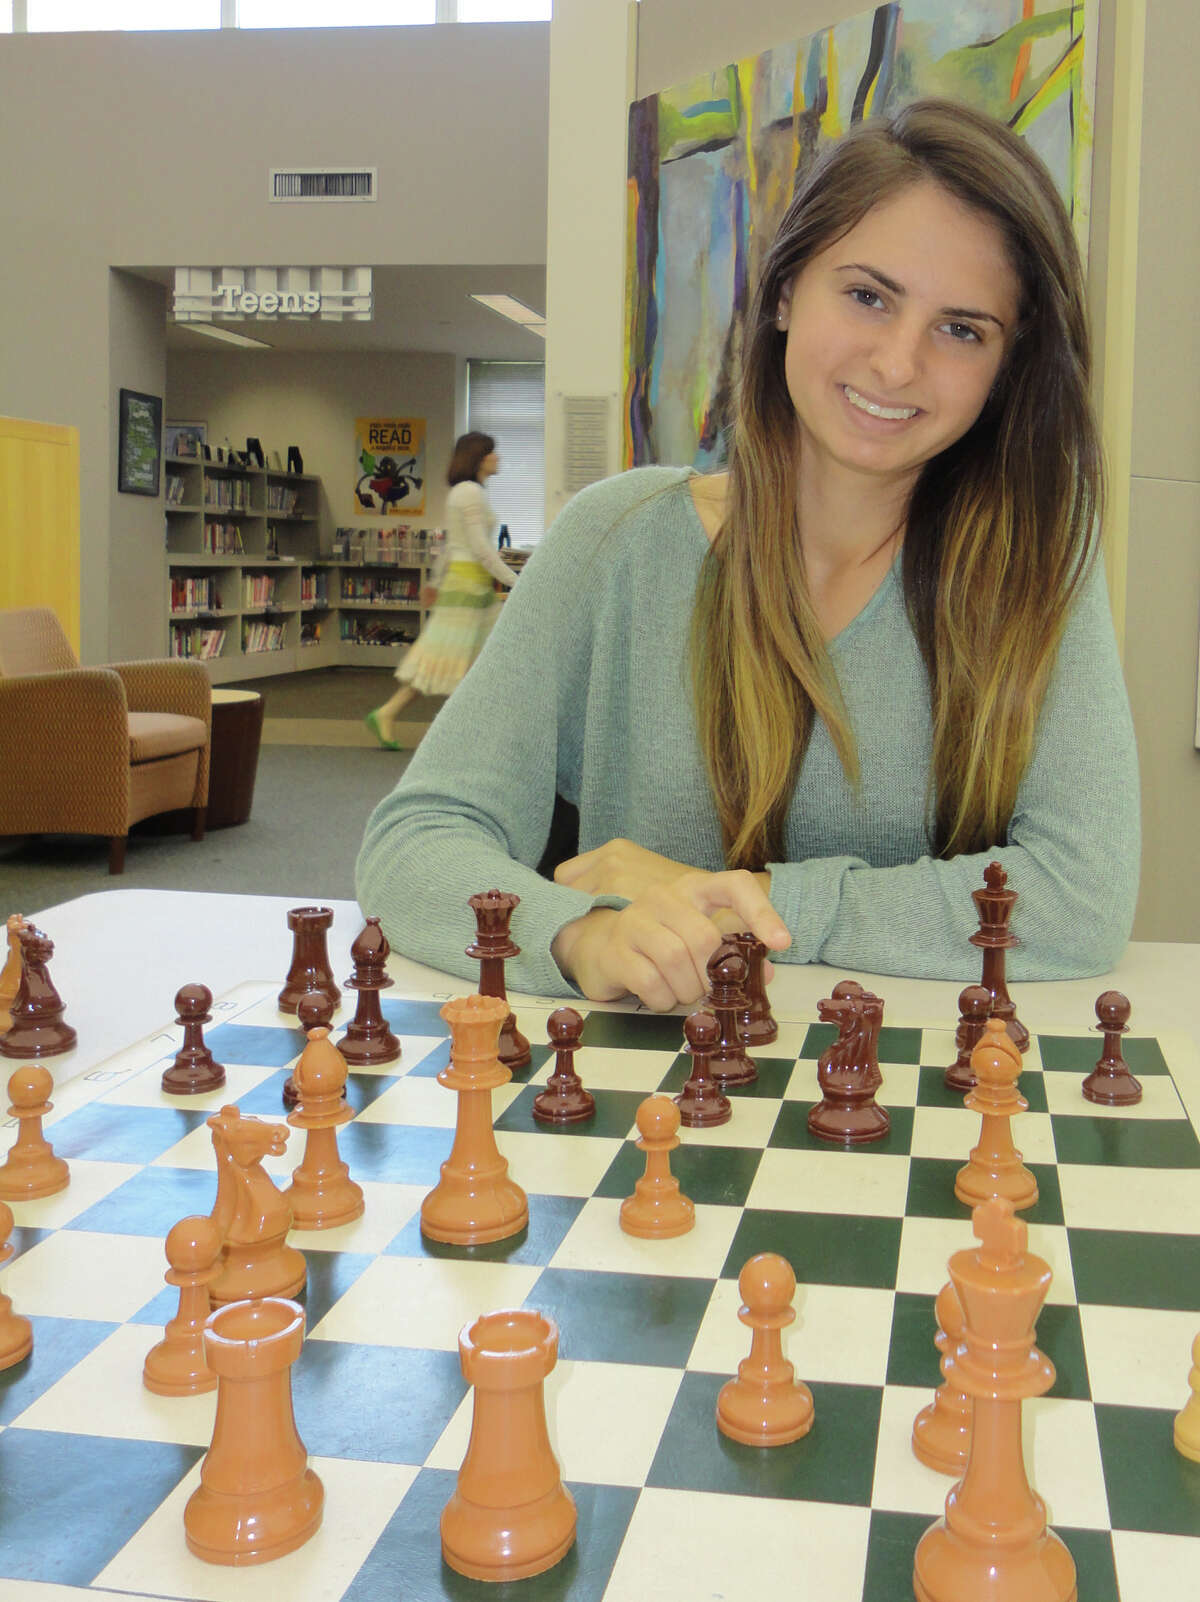 Alexandra Wiener, an 18-year-old recent graduate of Staples High School, practices chess strategy at the Westport Public Library. She already has several national and state chess championship titles to her credit.